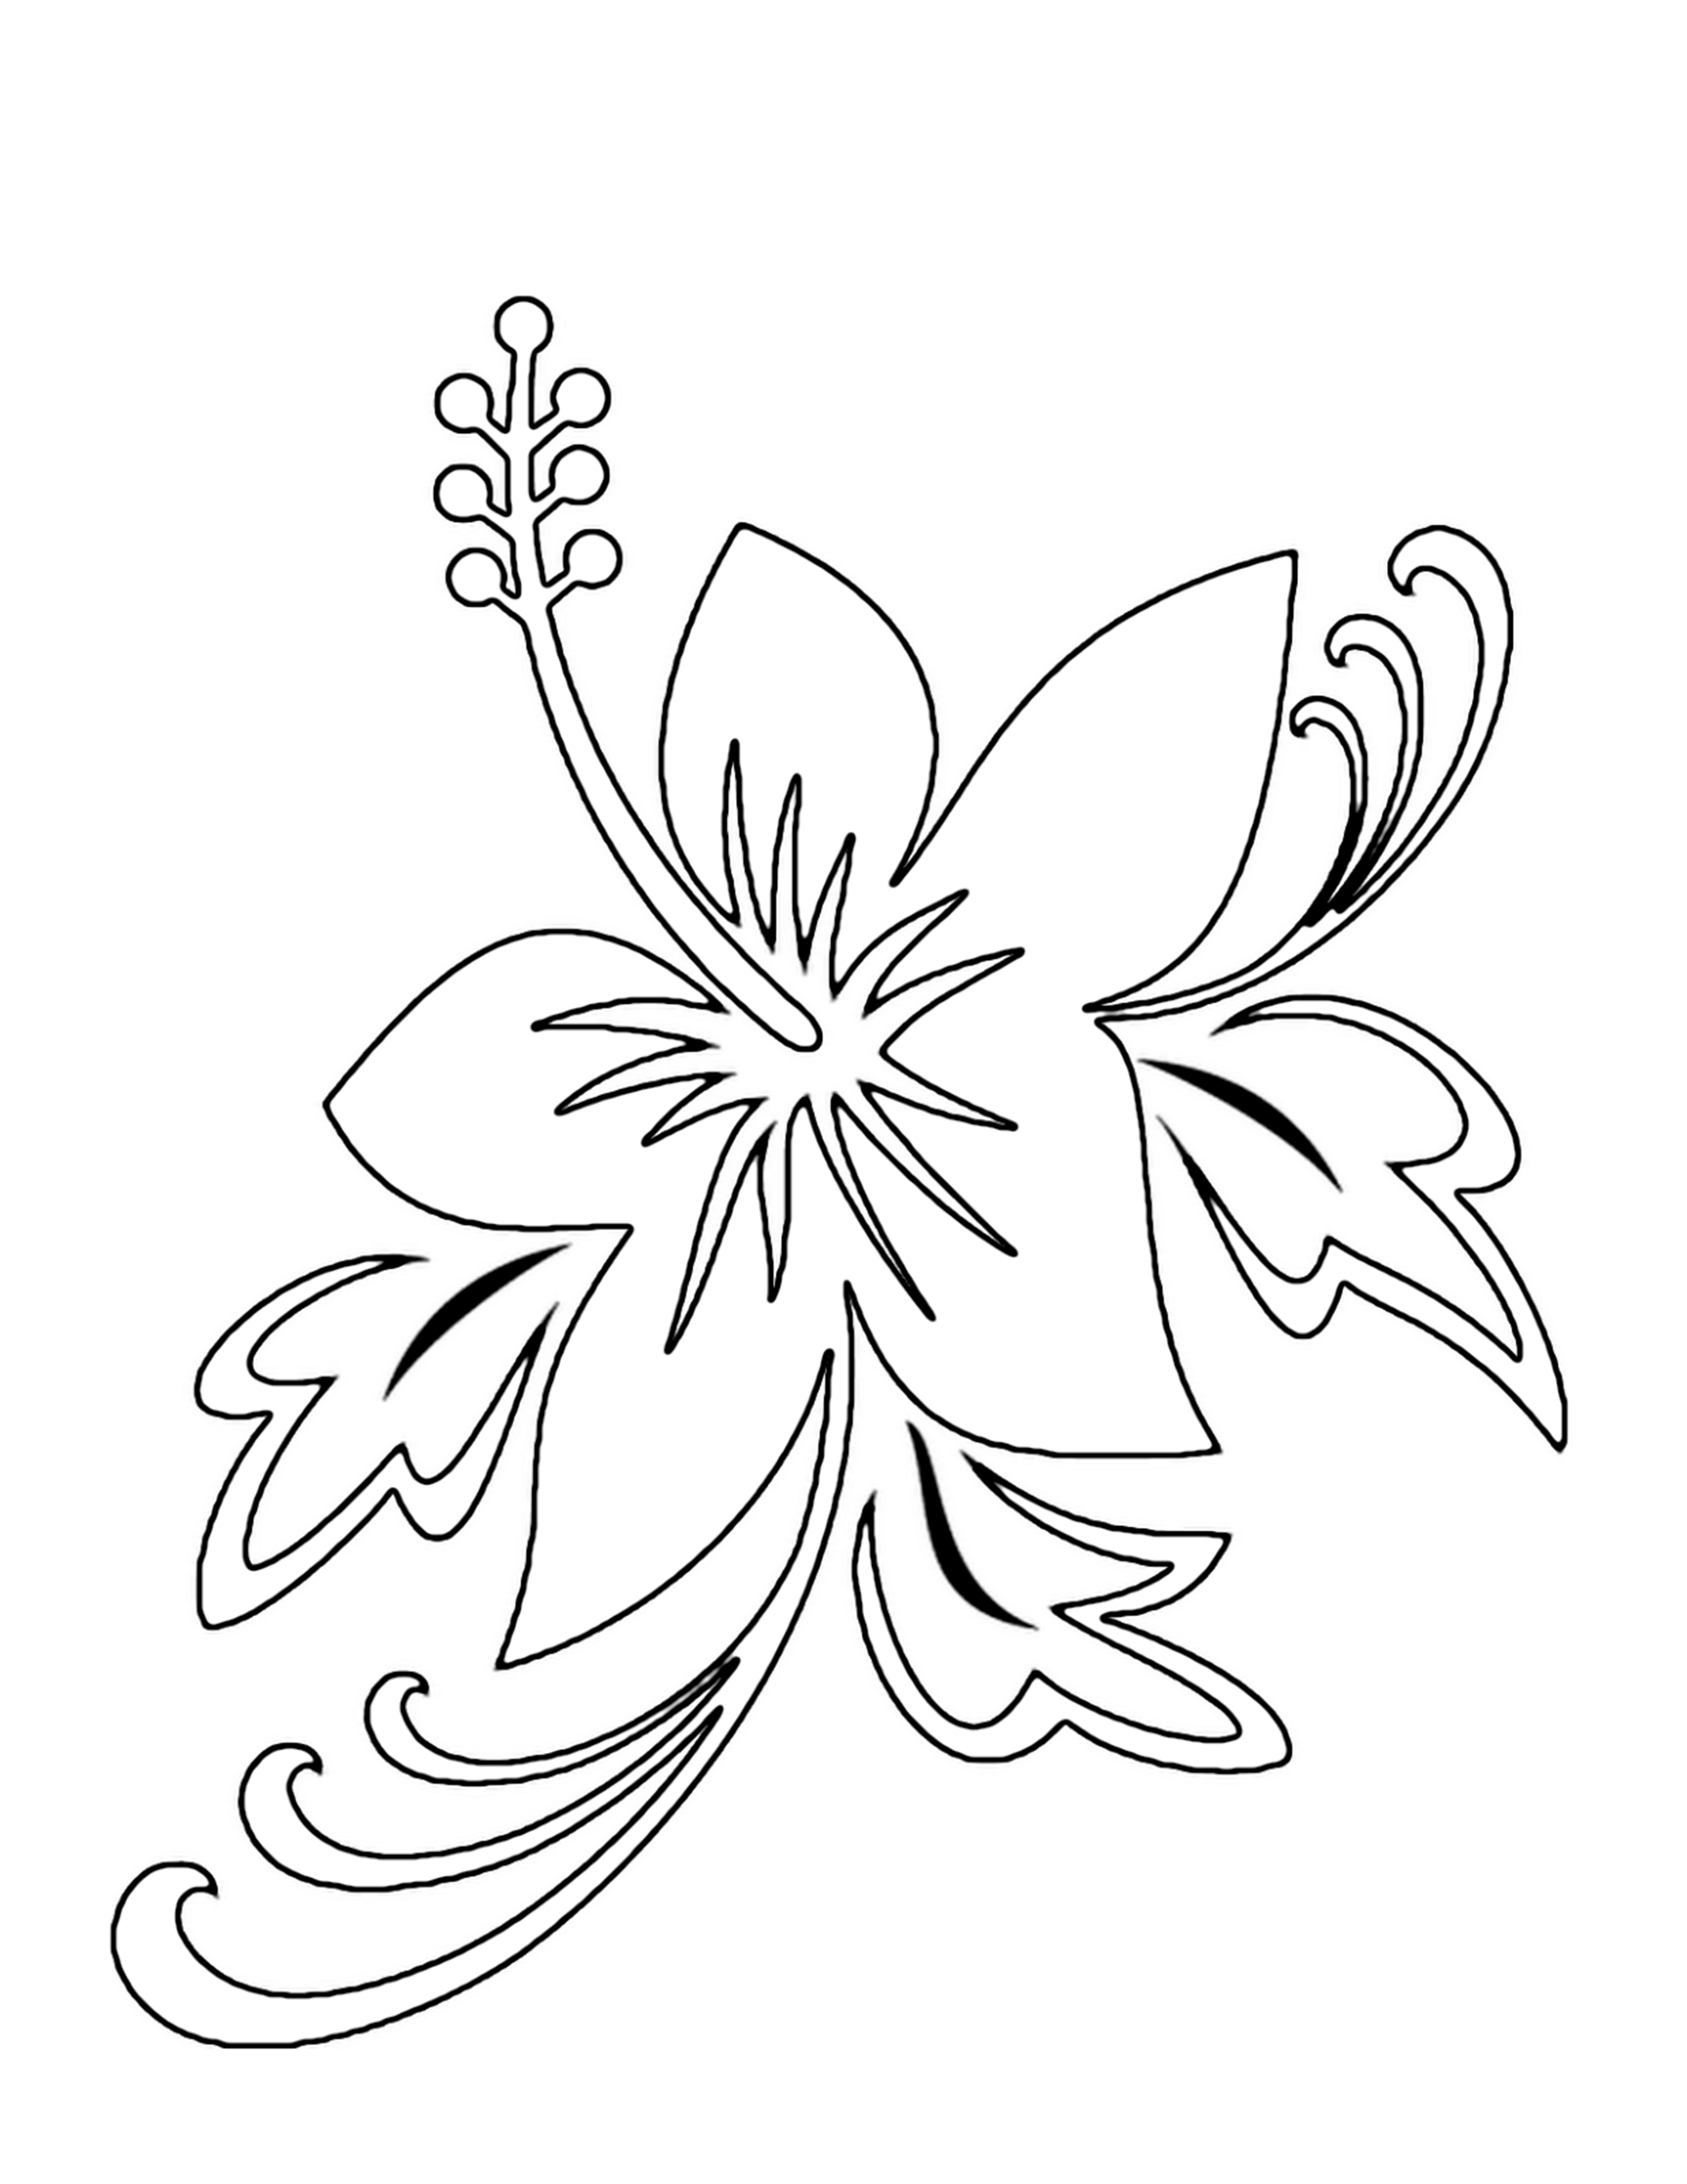 flower pictures coloring pages free printable hibiscus coloring pages for kids pictures flower pages coloring